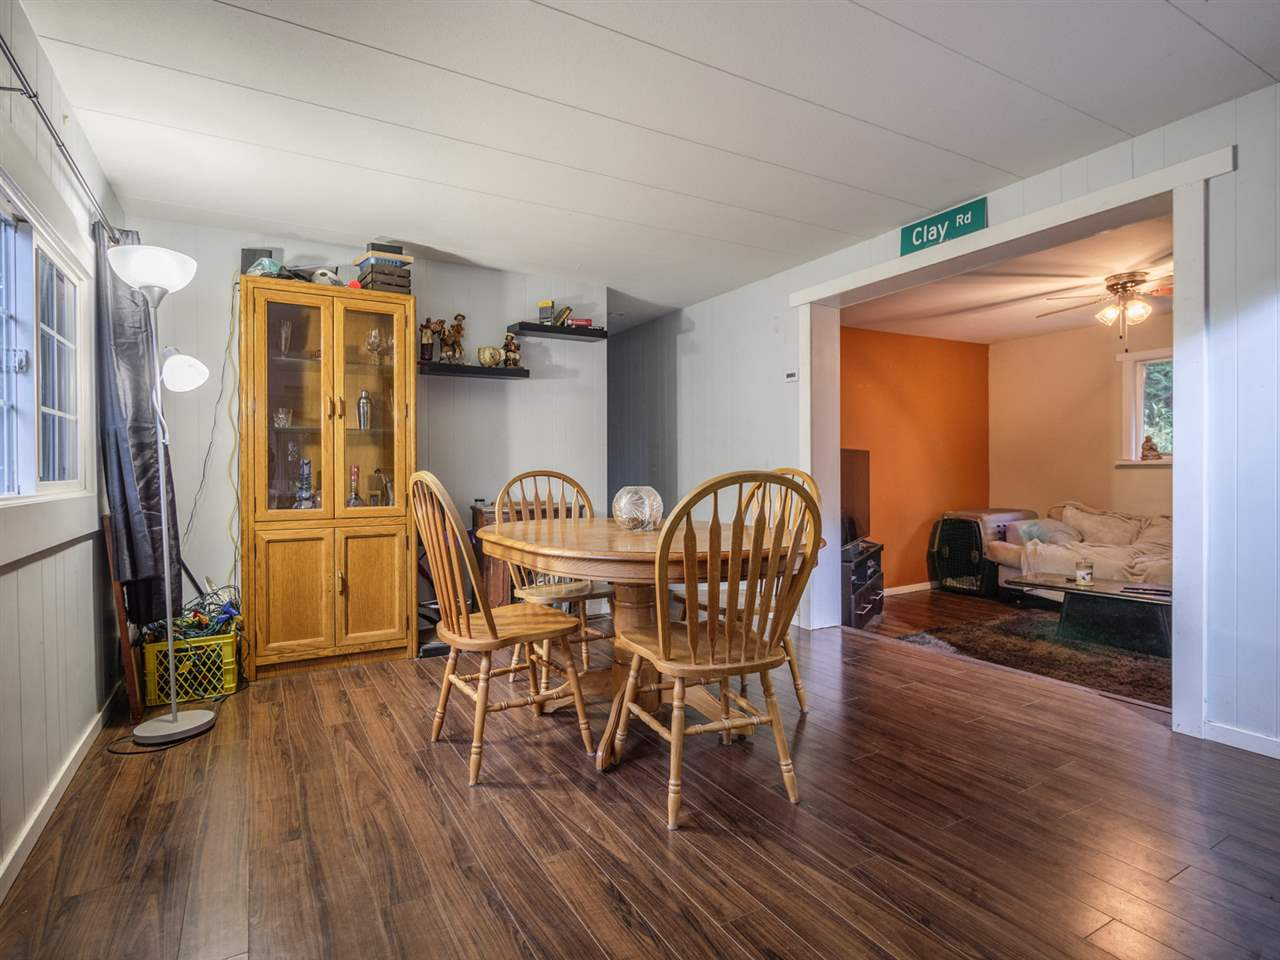 Photo 5: Photos: 5592 WAKEFIELD Road in Sechelt: Sechelt District Manufactured Home for sale (Sunshine Coast)  : MLS® # R2230720